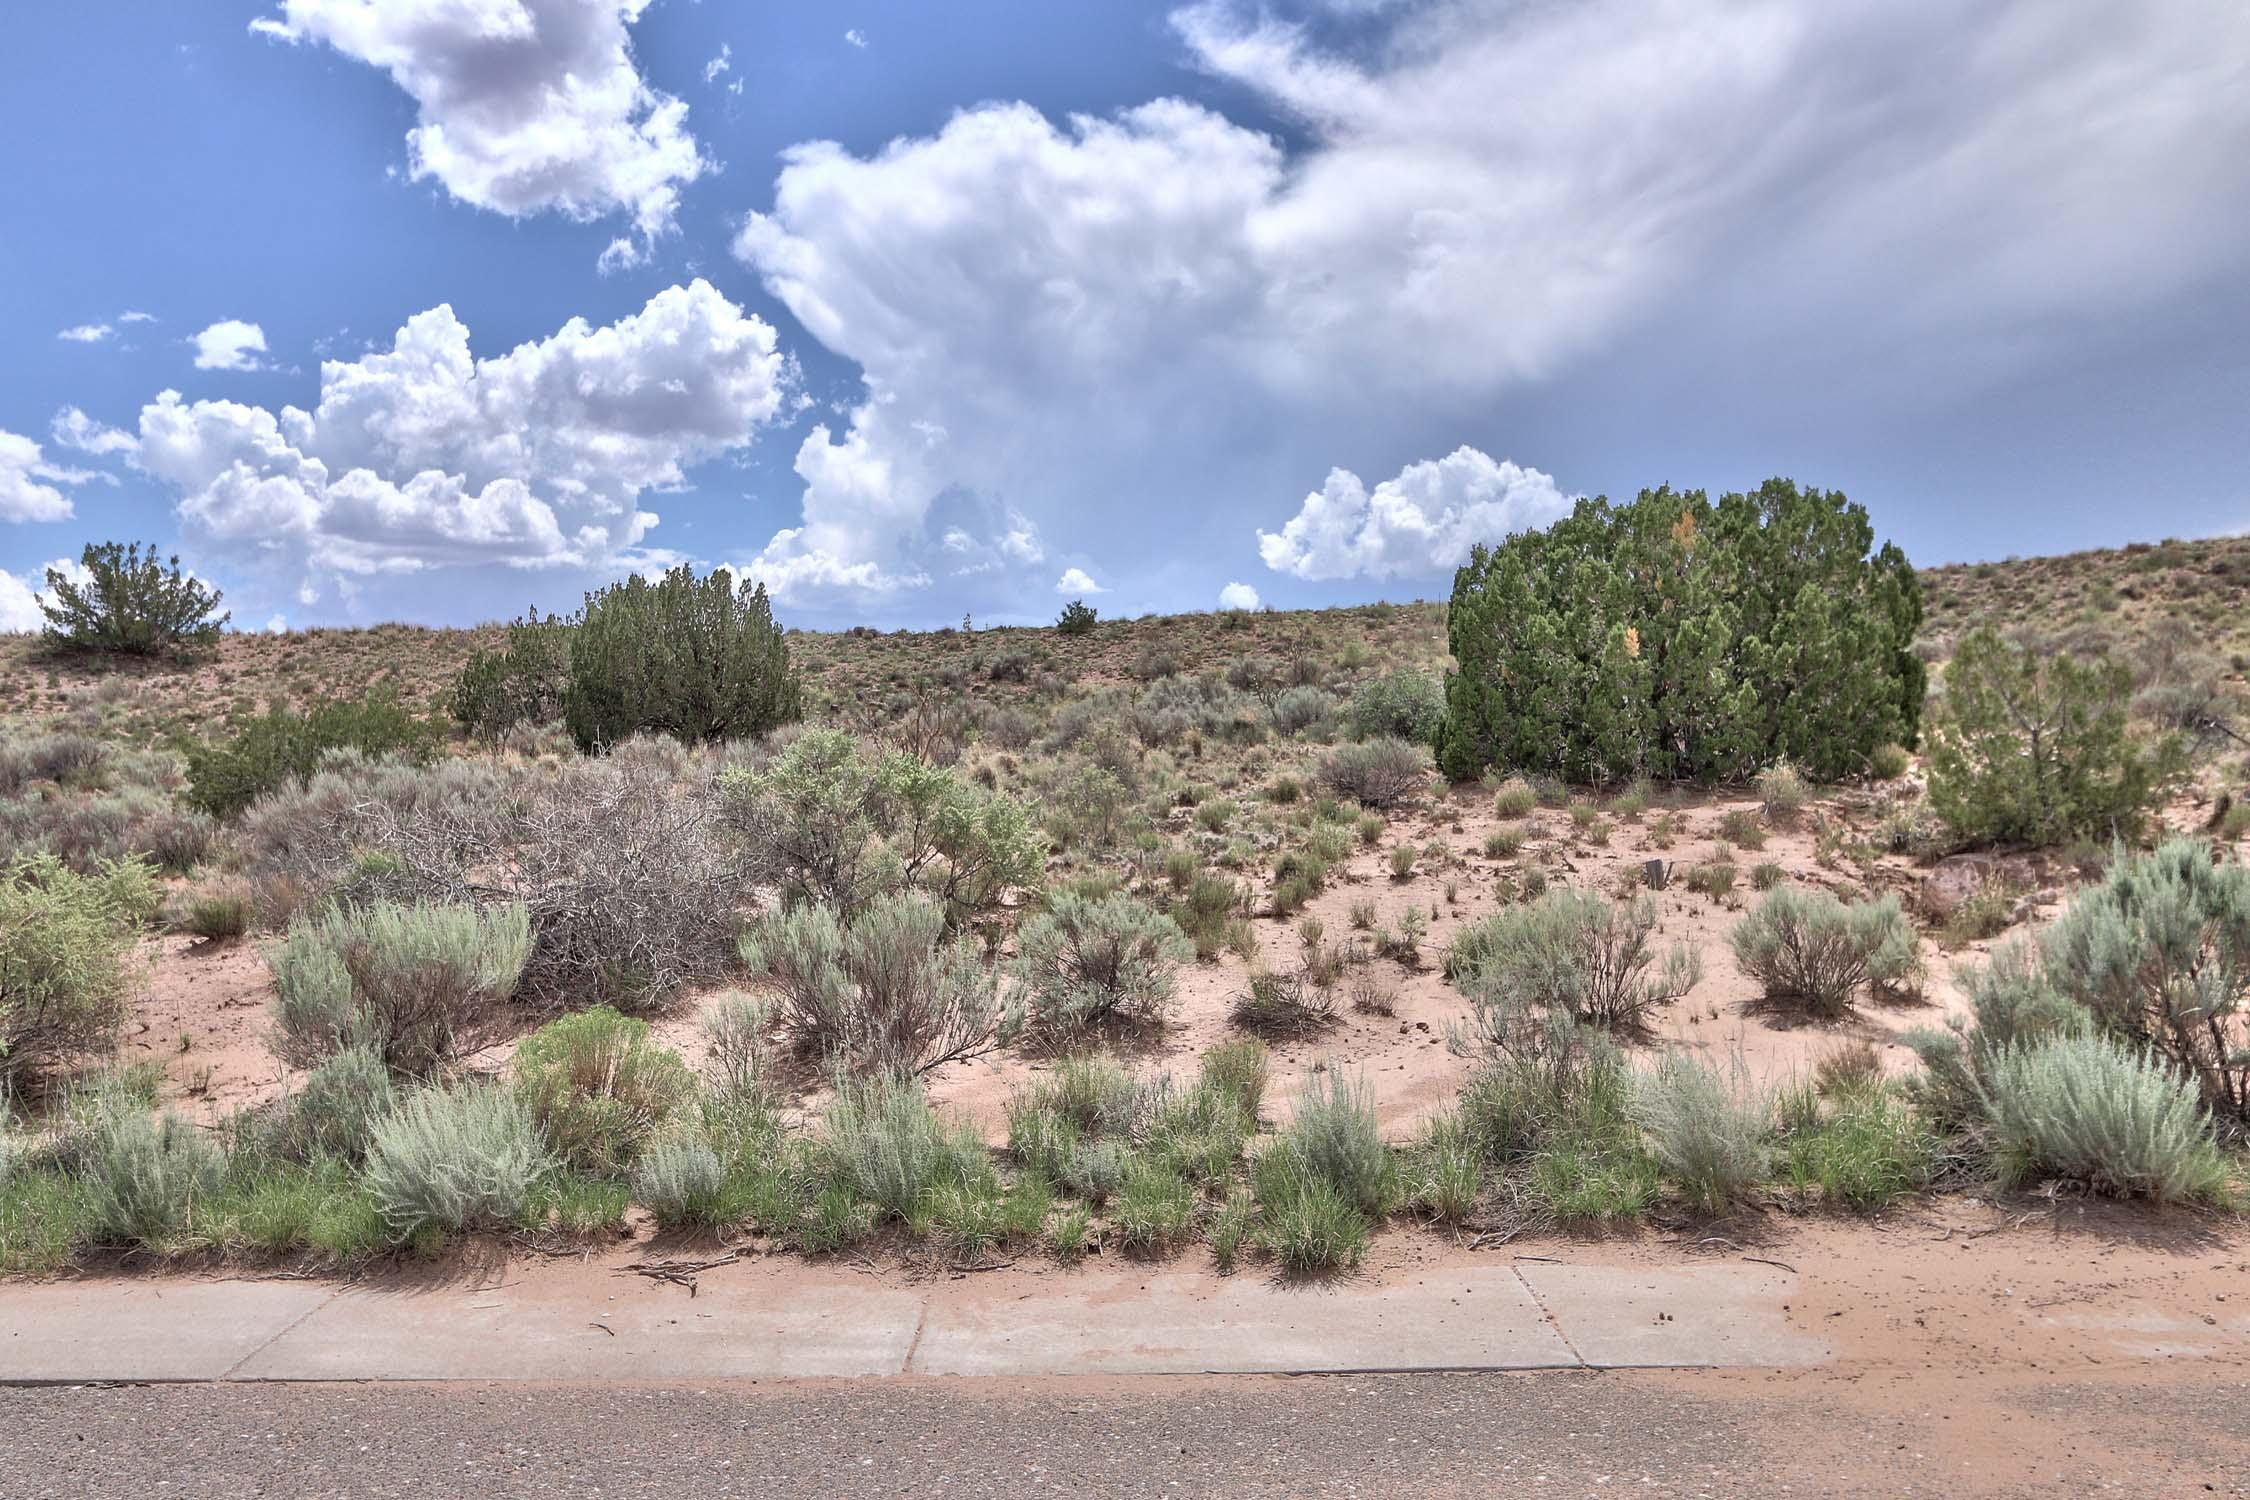 2261 Venada Road NE, Rio Rancho, NM 87144 - Rio Rancho, NM real estate listing